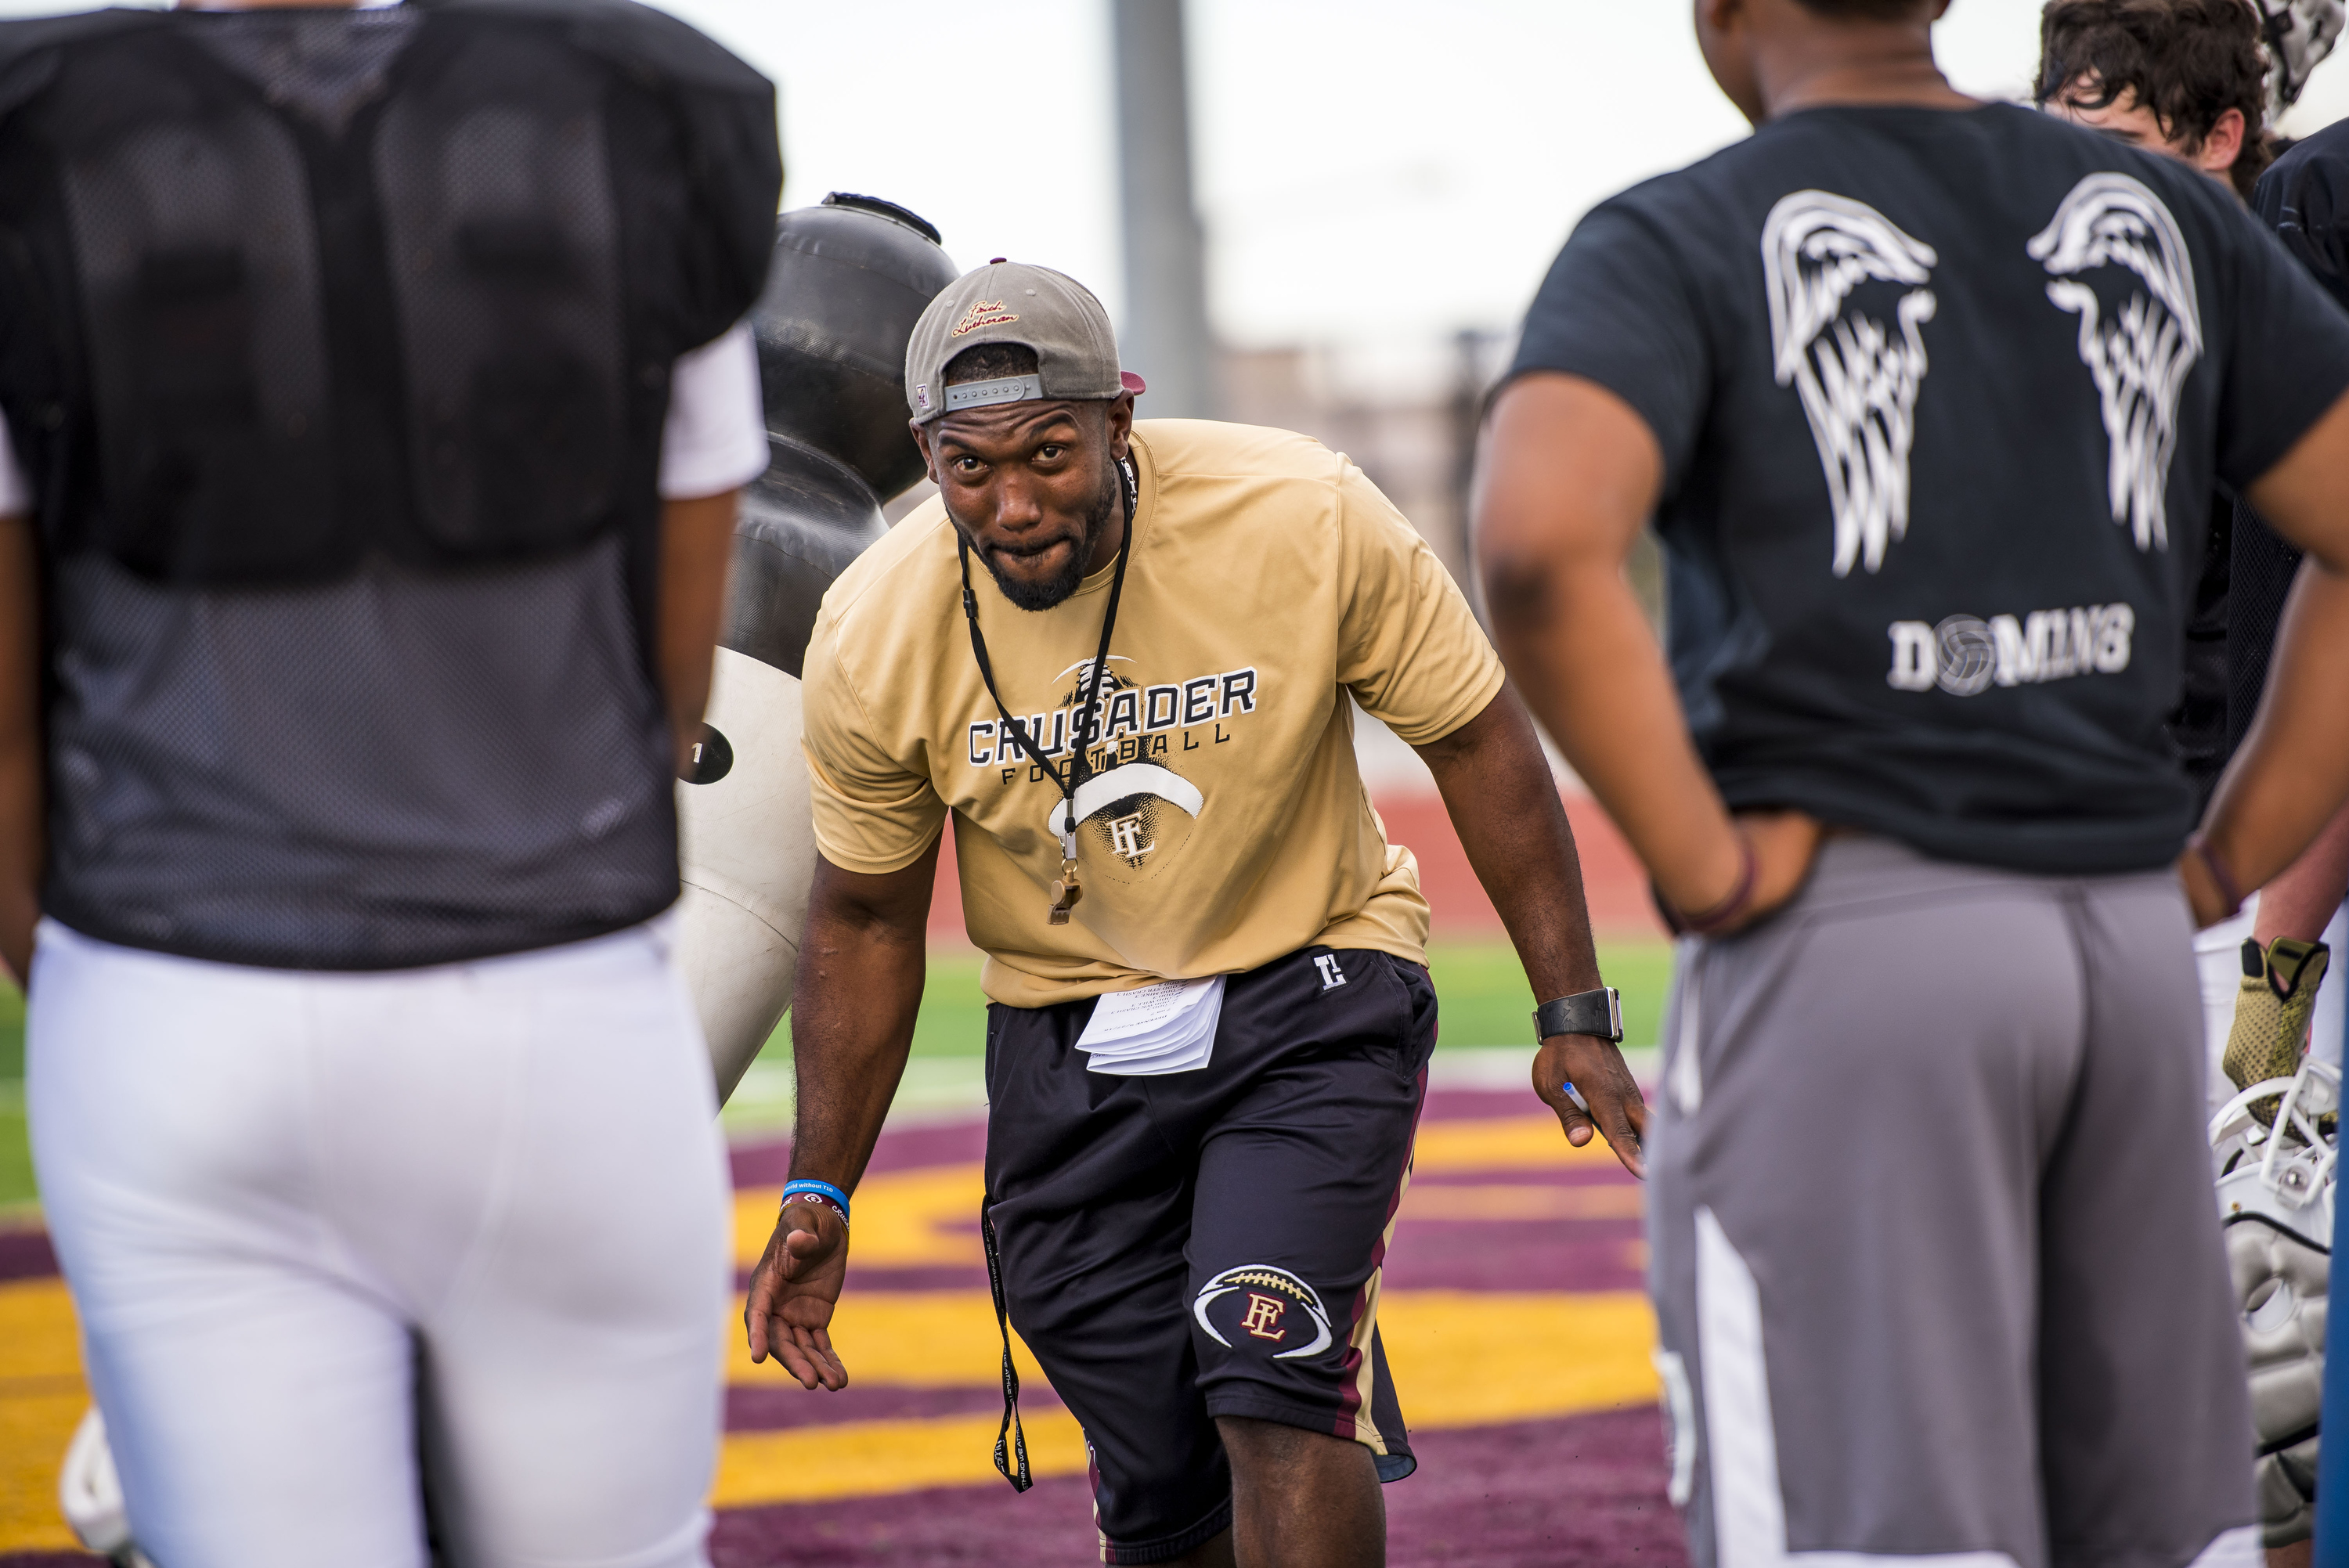 Sep 27, 2016 -- Las Vegas, NV, U.S.A -- Vernon Fox instructs his team during football practice at Faith Lutheran High School. Feature on Randall Cunningham and Vernon Fox who are both former NFL players, current high school coaches and ordained ministers and African-Americans. That puts them at the intersection of what NFL players are doing during the National Anthem, the trickle-down effect at high schools, the struggles of young people in urban areas and faith and race. -- Photo by Joshua Dahl/USA TODAY Sports Images, Gannett ORG XMIT: US 135535 Cunningham Fox 9/26/2016 [Via MerlinFTP Drop]